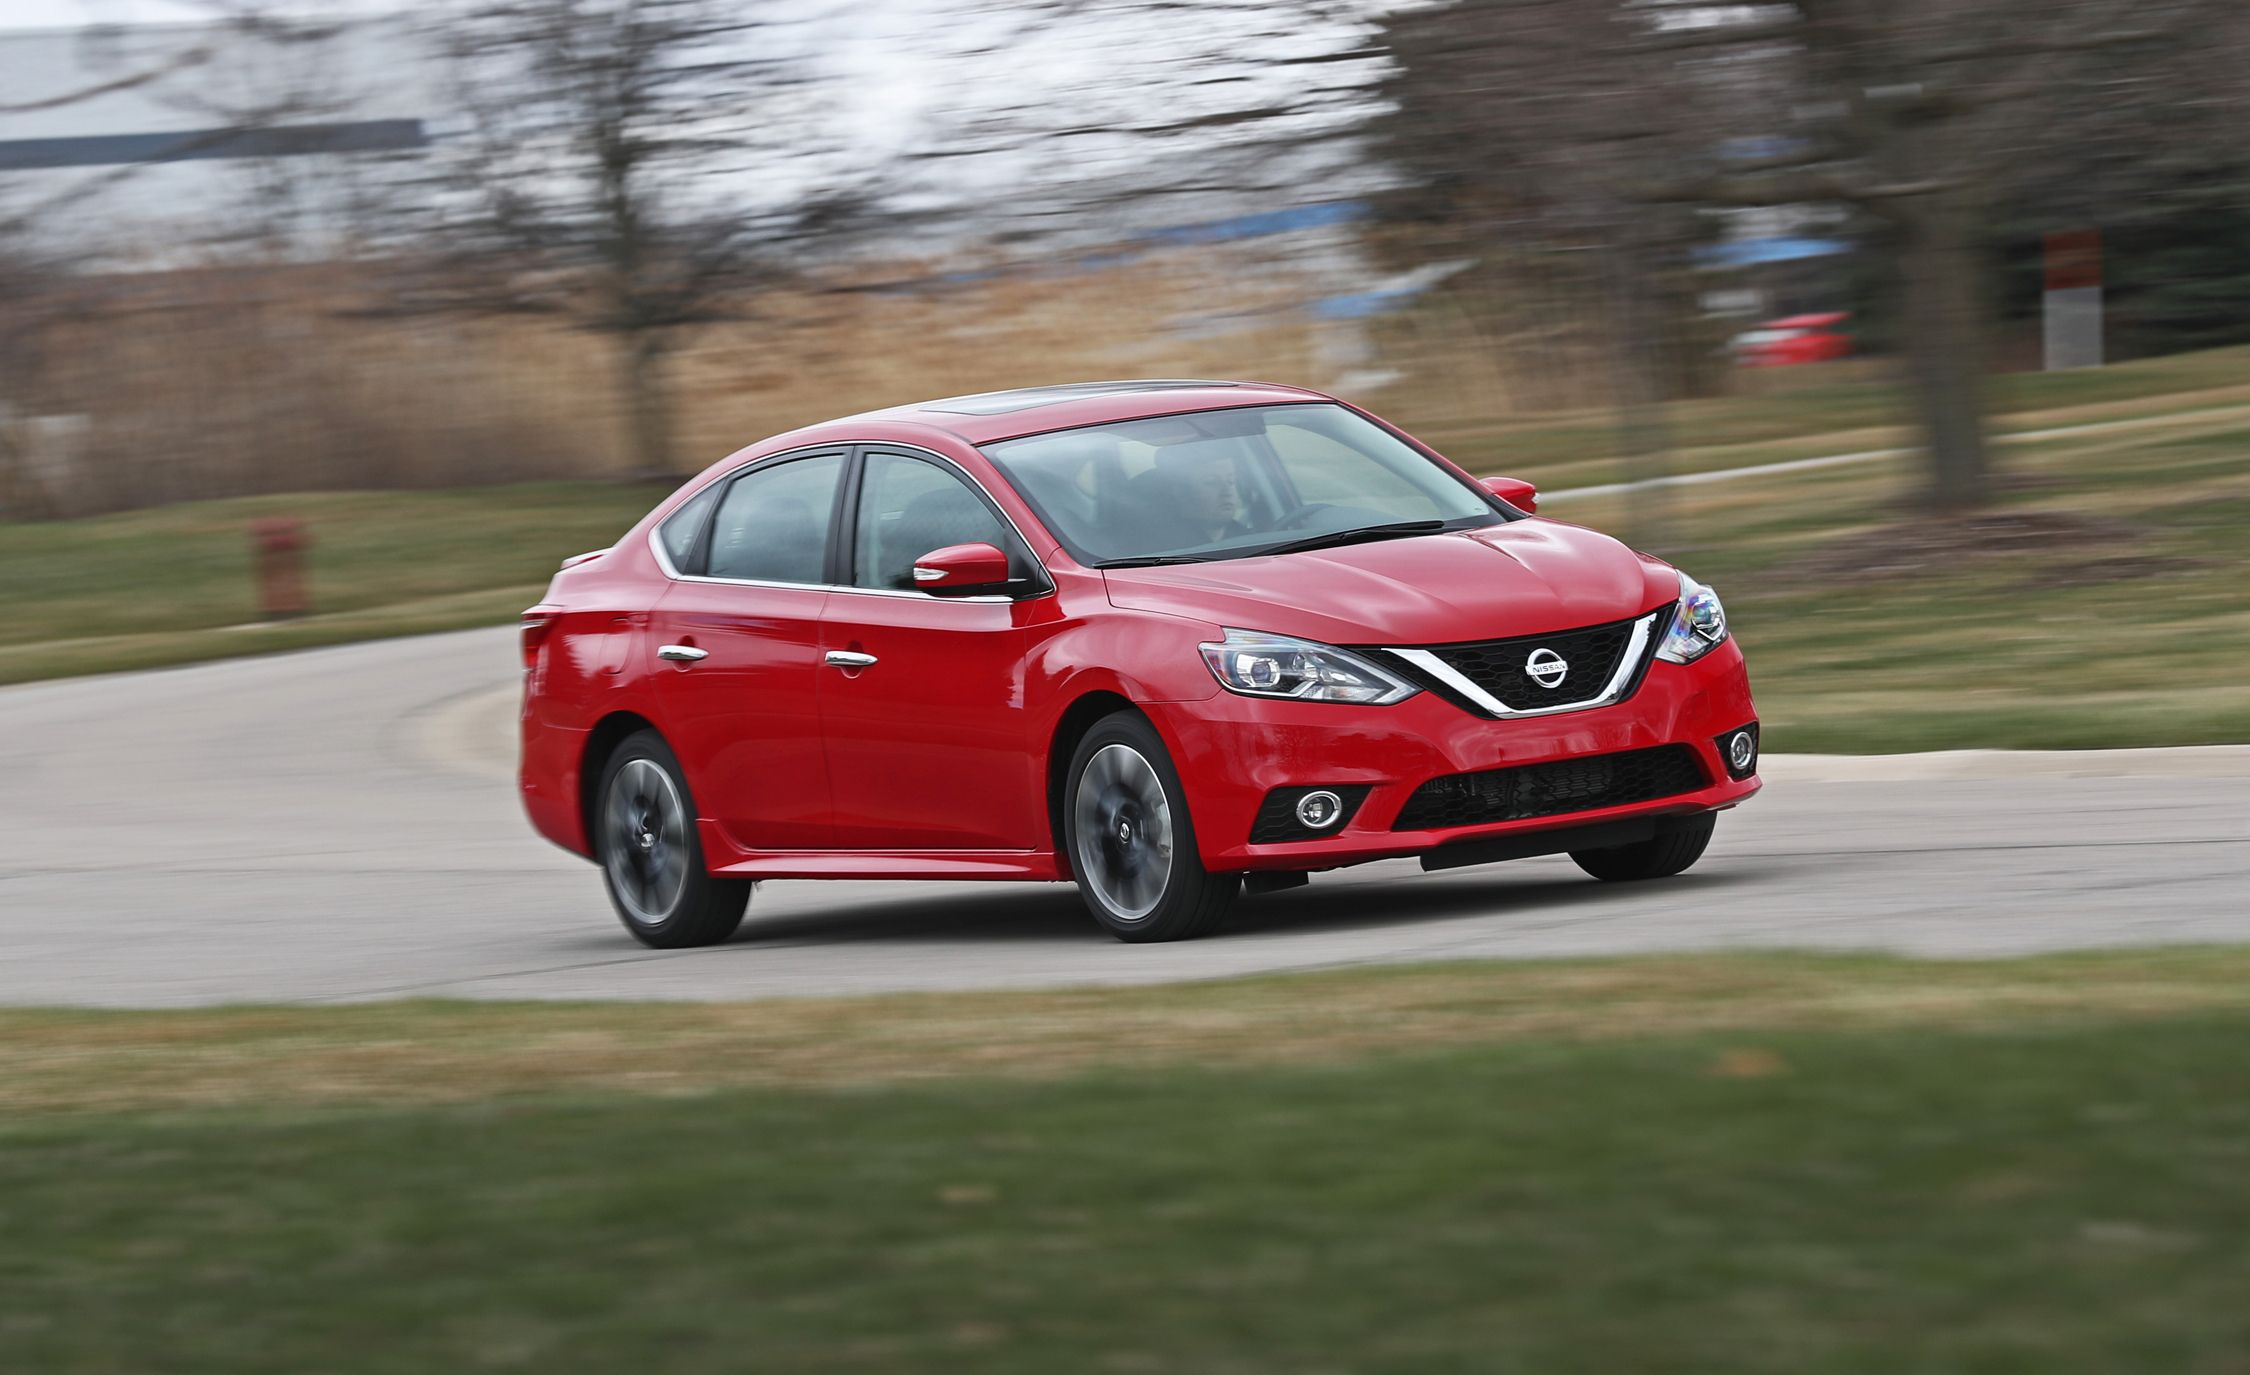 2018 Nissan Sentra SR Turbo Manual Test: NISMO Punch in an ...